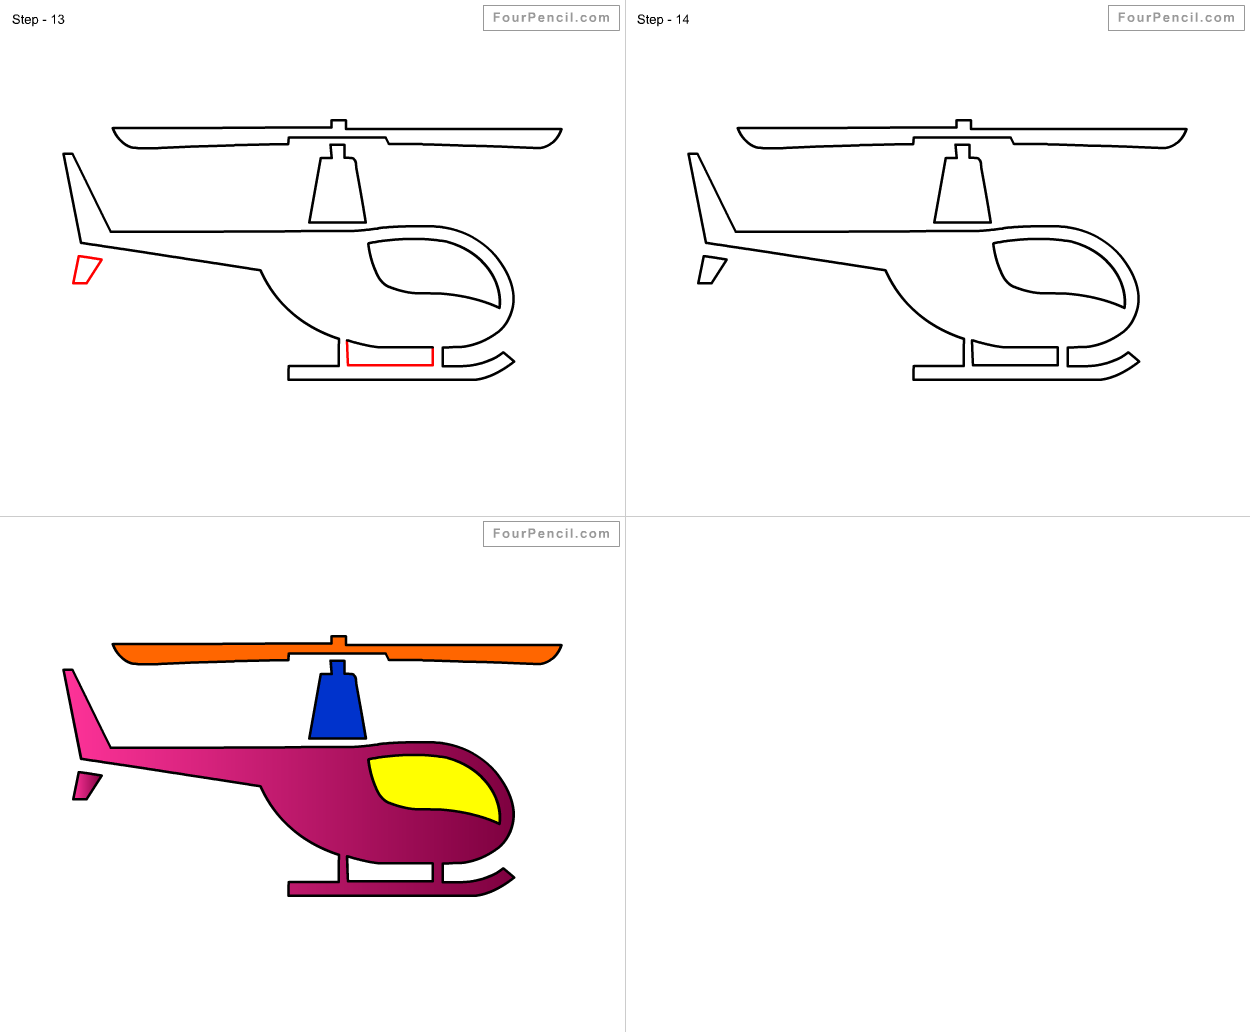 helicopter toy flying with How To Draw Helicopter For Kids Step By on How To Draw Helicopter For Kids Step By furthermore A Customizable Bell 525 Relentless Helicopter likewise Clip Art Toys additionally What Cartoon Had A Cloud City Guarded By Angels Above A Volcanic Earth And A De in addition Inguity HD Camera Drone Test Options p 95.